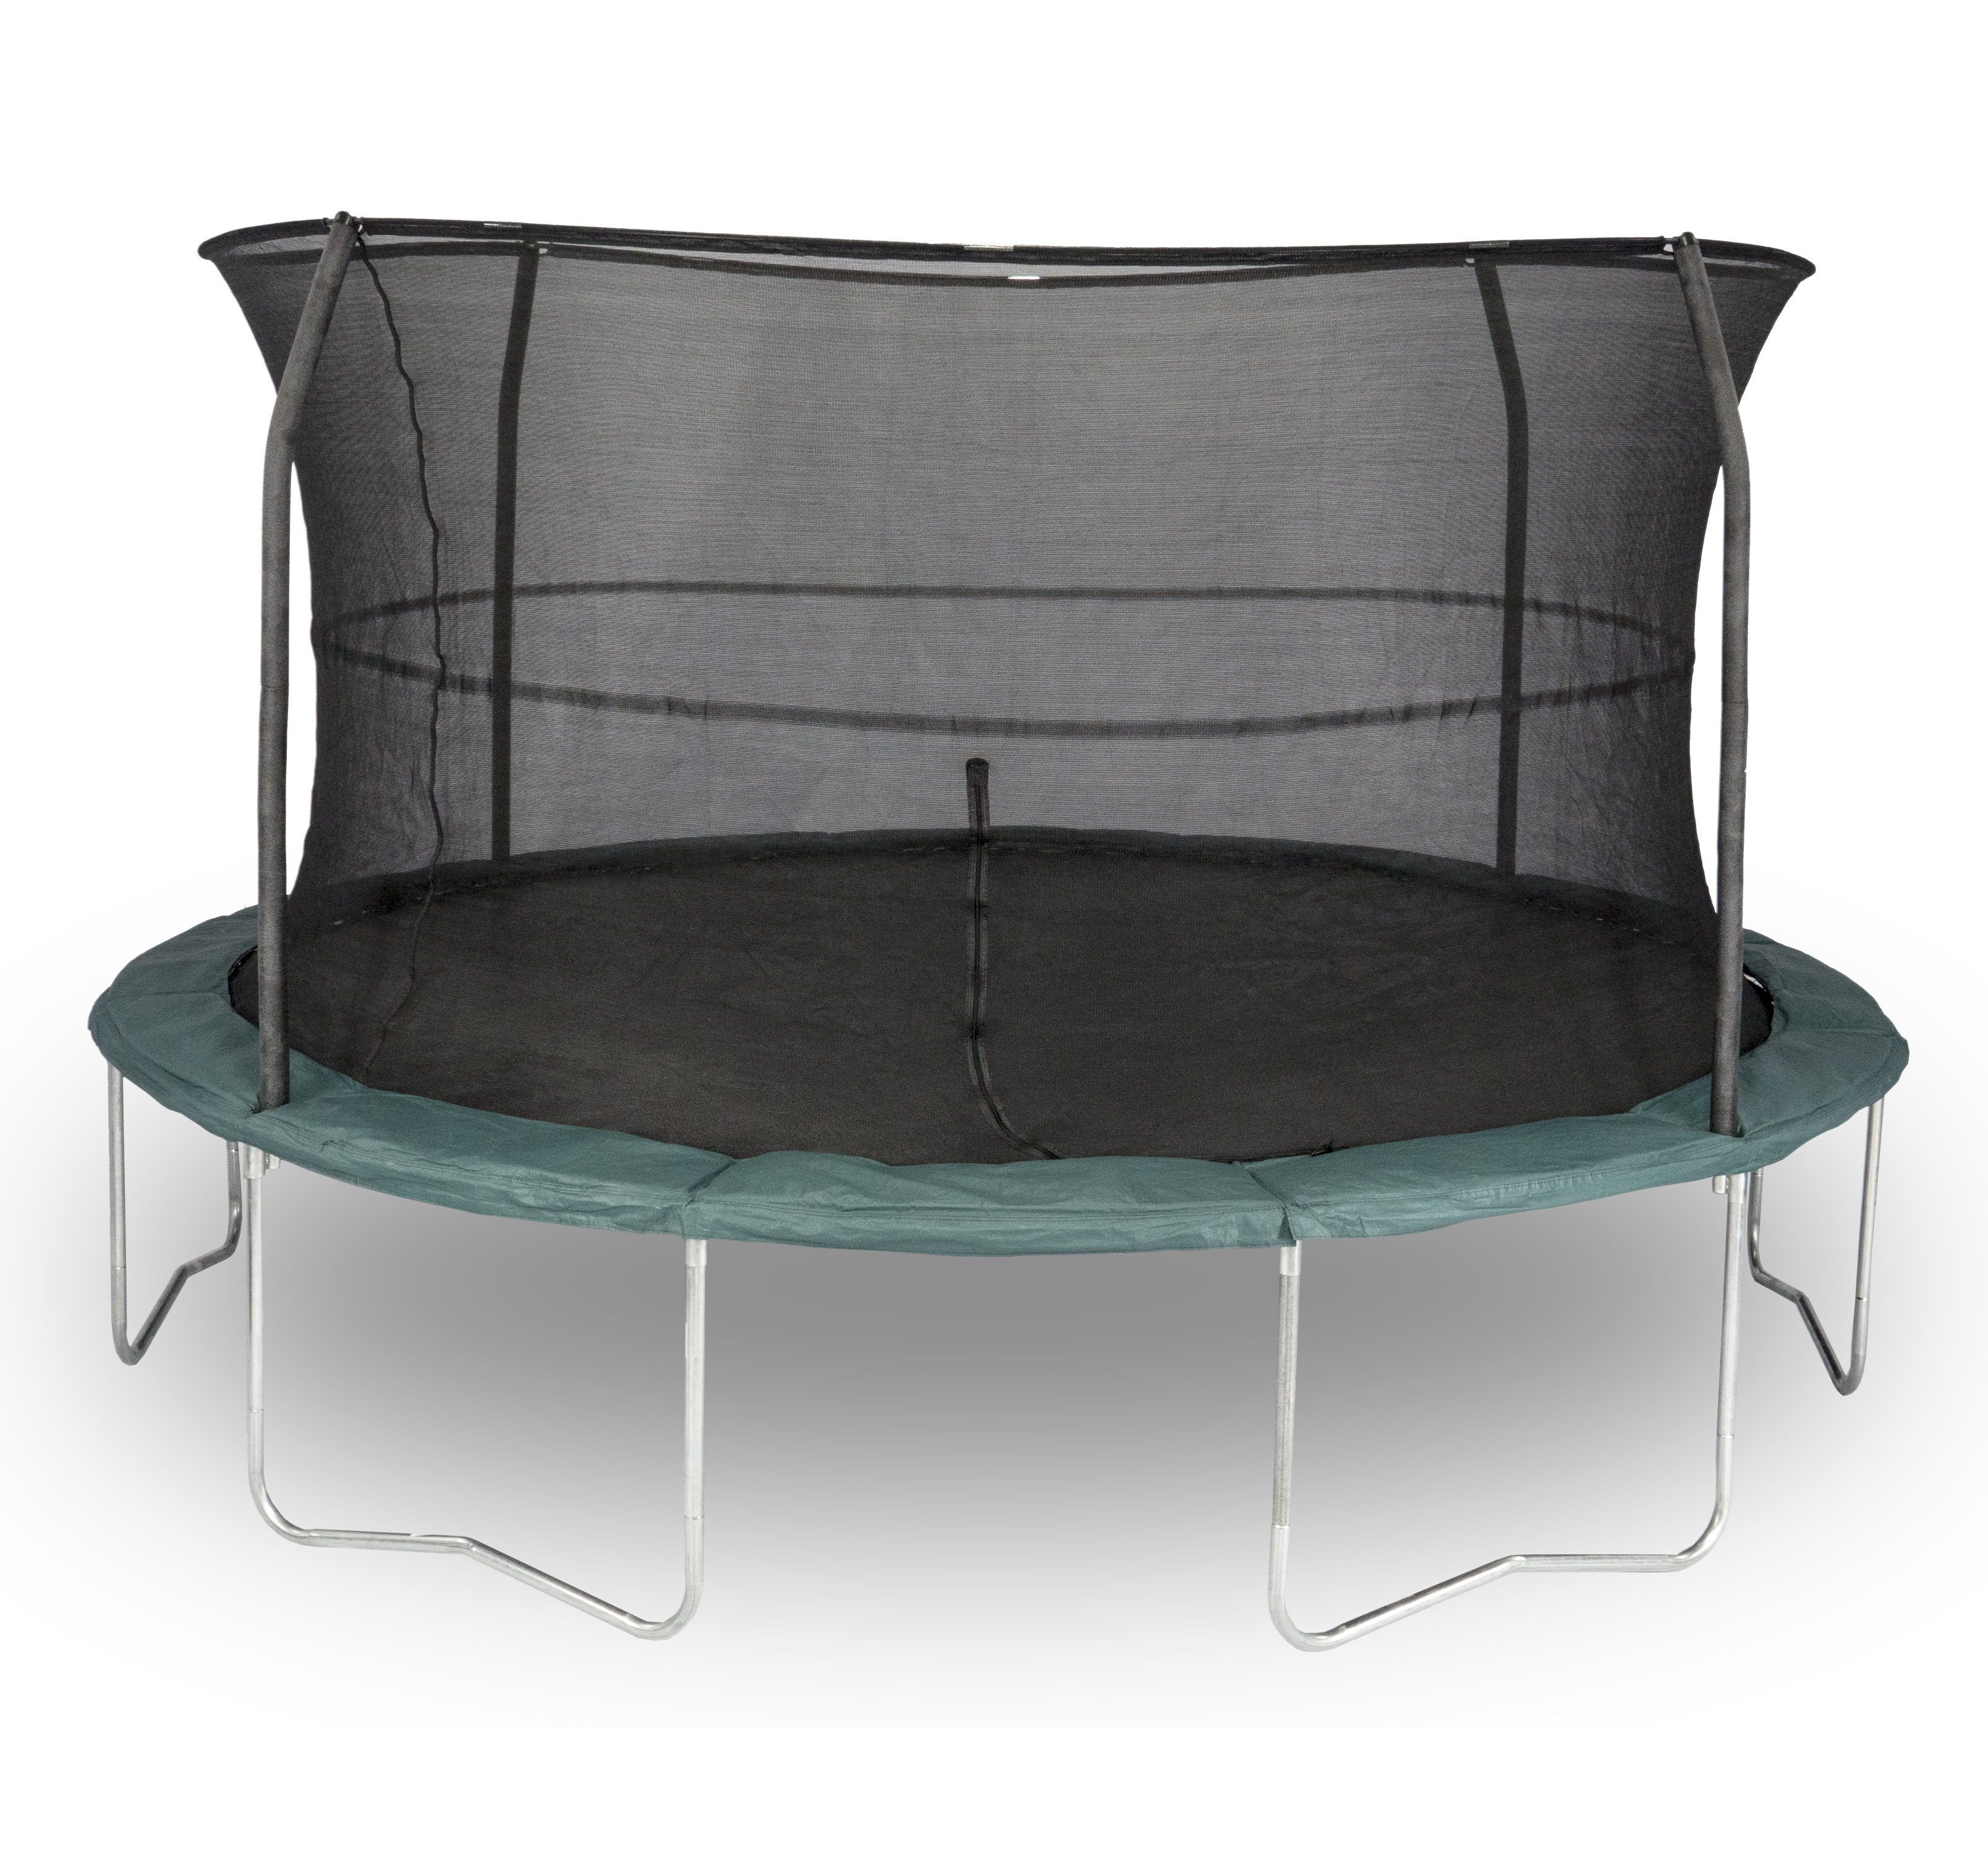 14 ft Orbounder Tr&oline and Enclosure Combo Style OR1413B6A1-DAL Dim - 168  dia x 111   sc 1 th 217 & Bazoongi™ Kids! - Trampolines